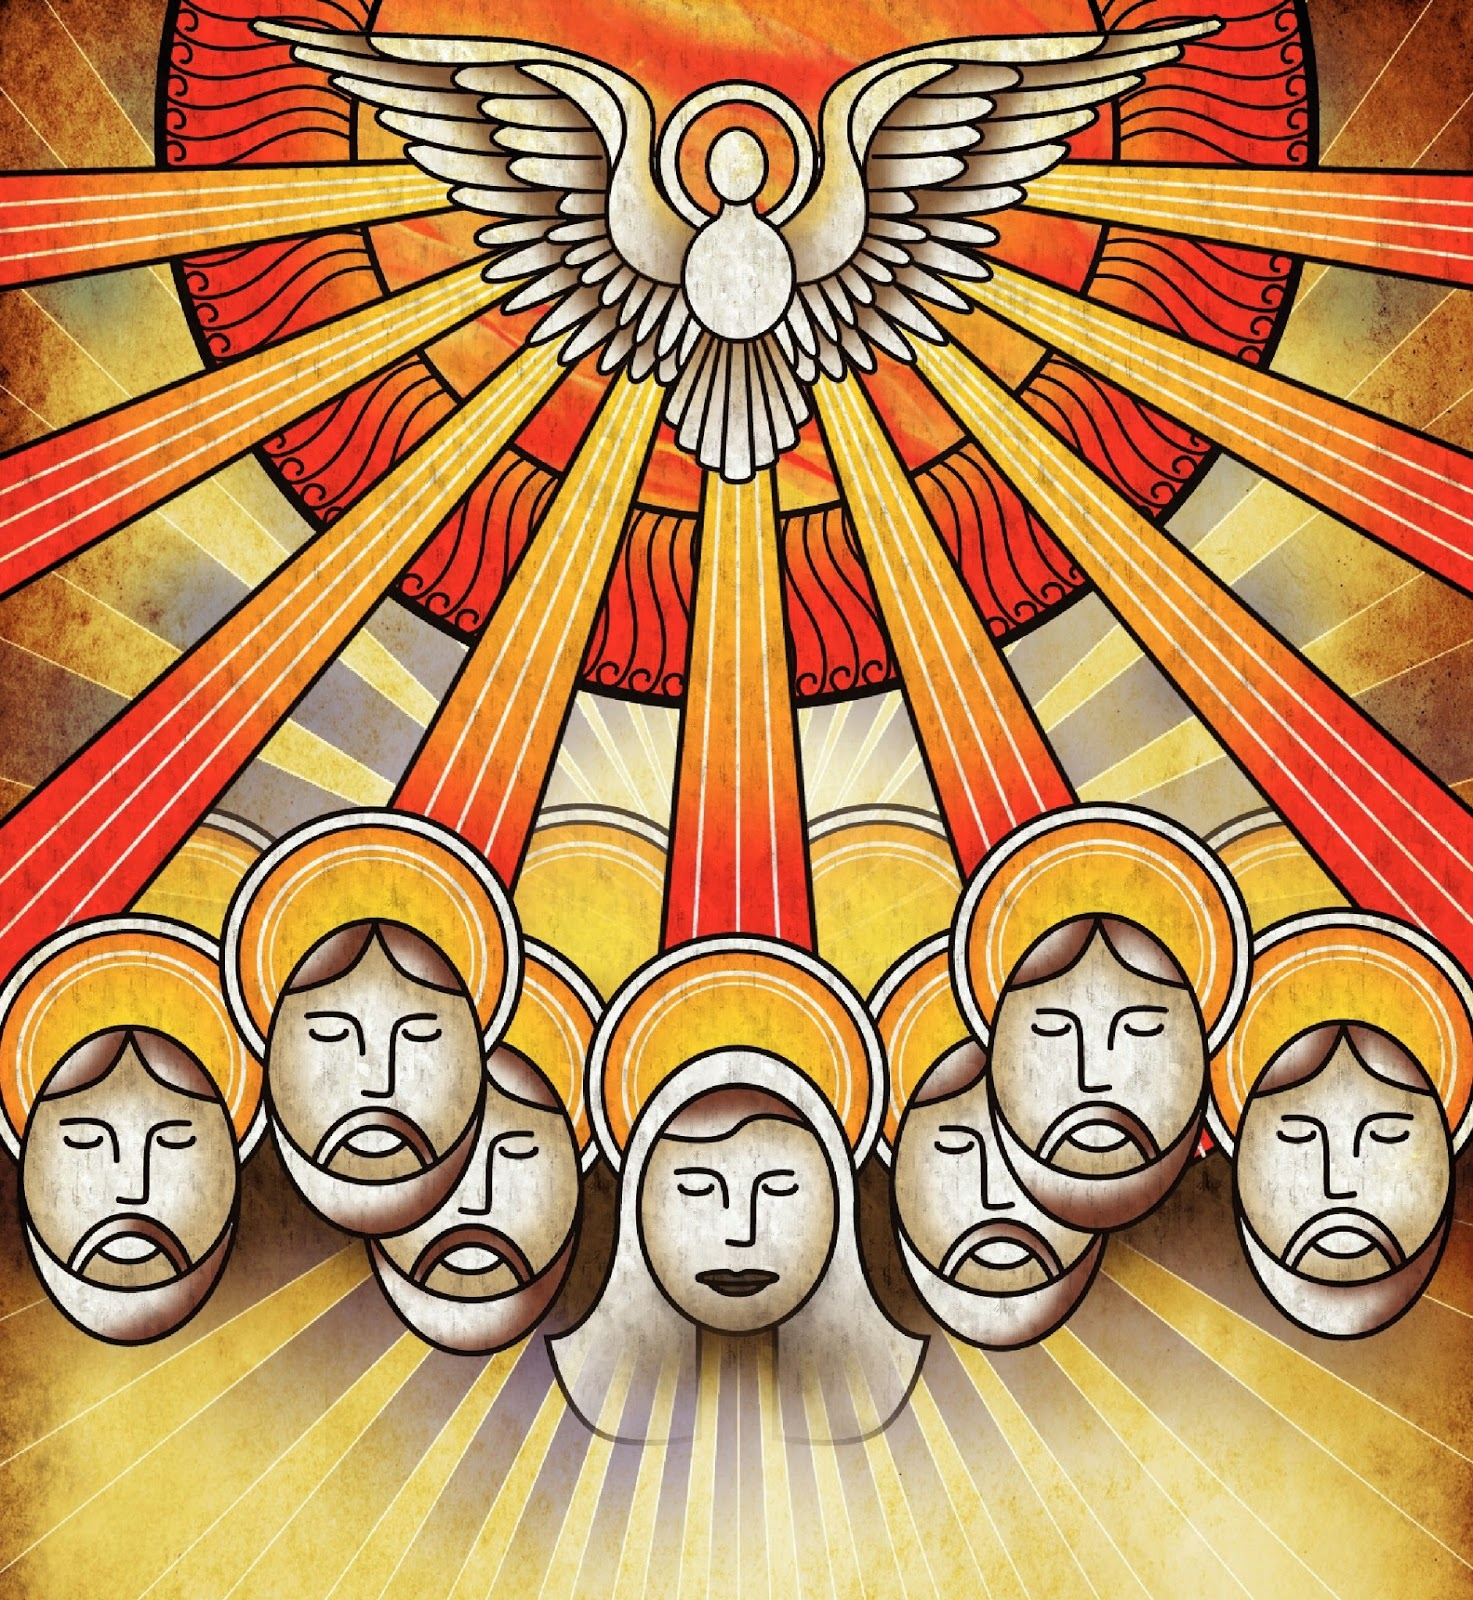 Clip Art Pentecost Clipart clergy confidential bad pentecost clipart either the disciples need to turn that frown upside down or fu manchu had really caught on